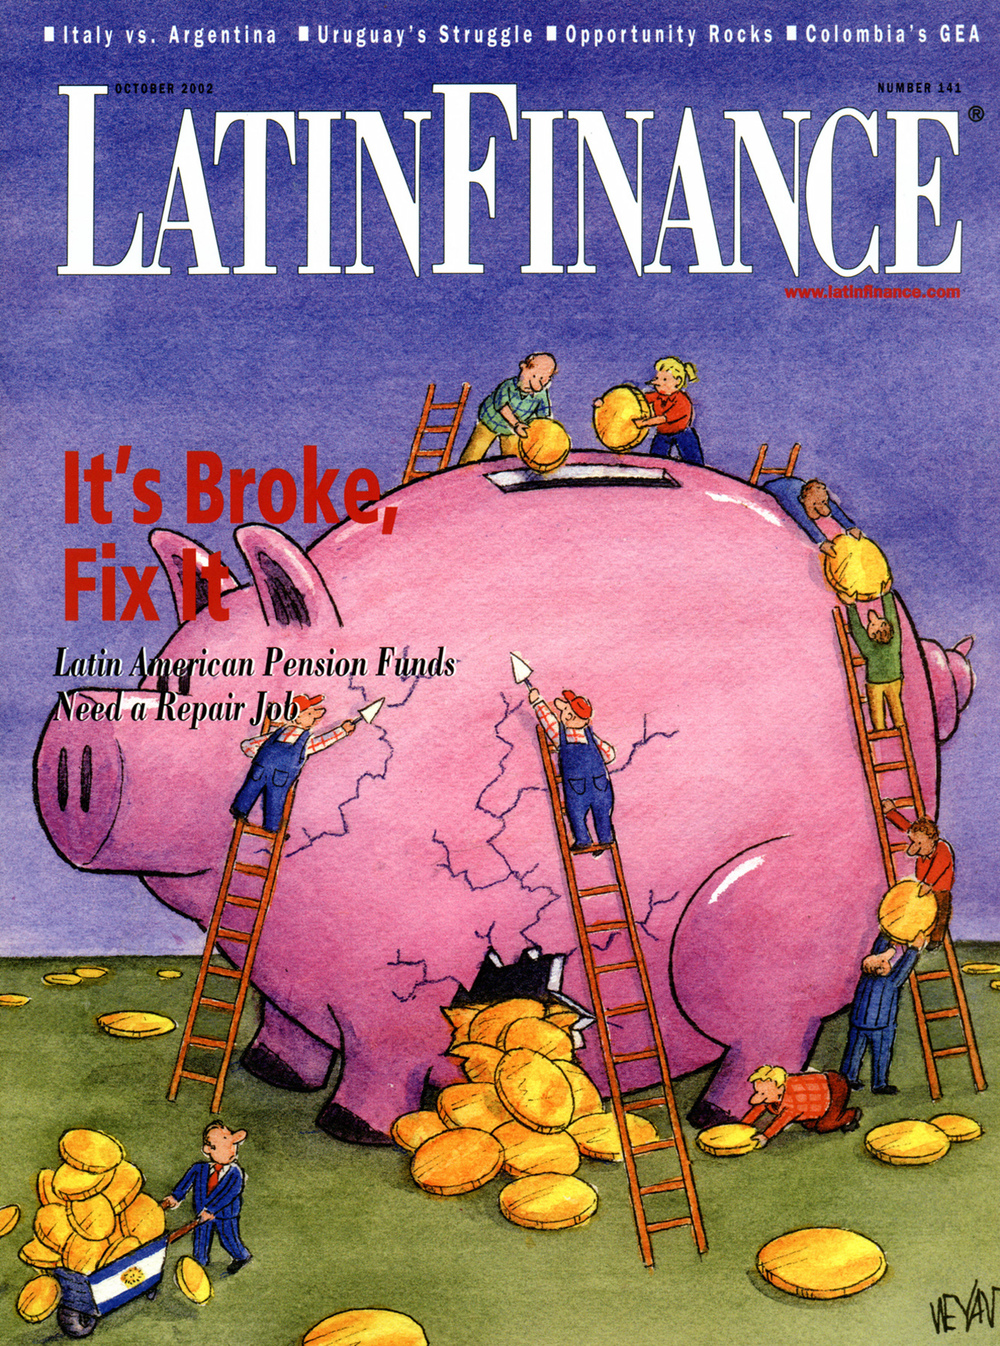 LatinFinance-Oct02 Cover.jpg